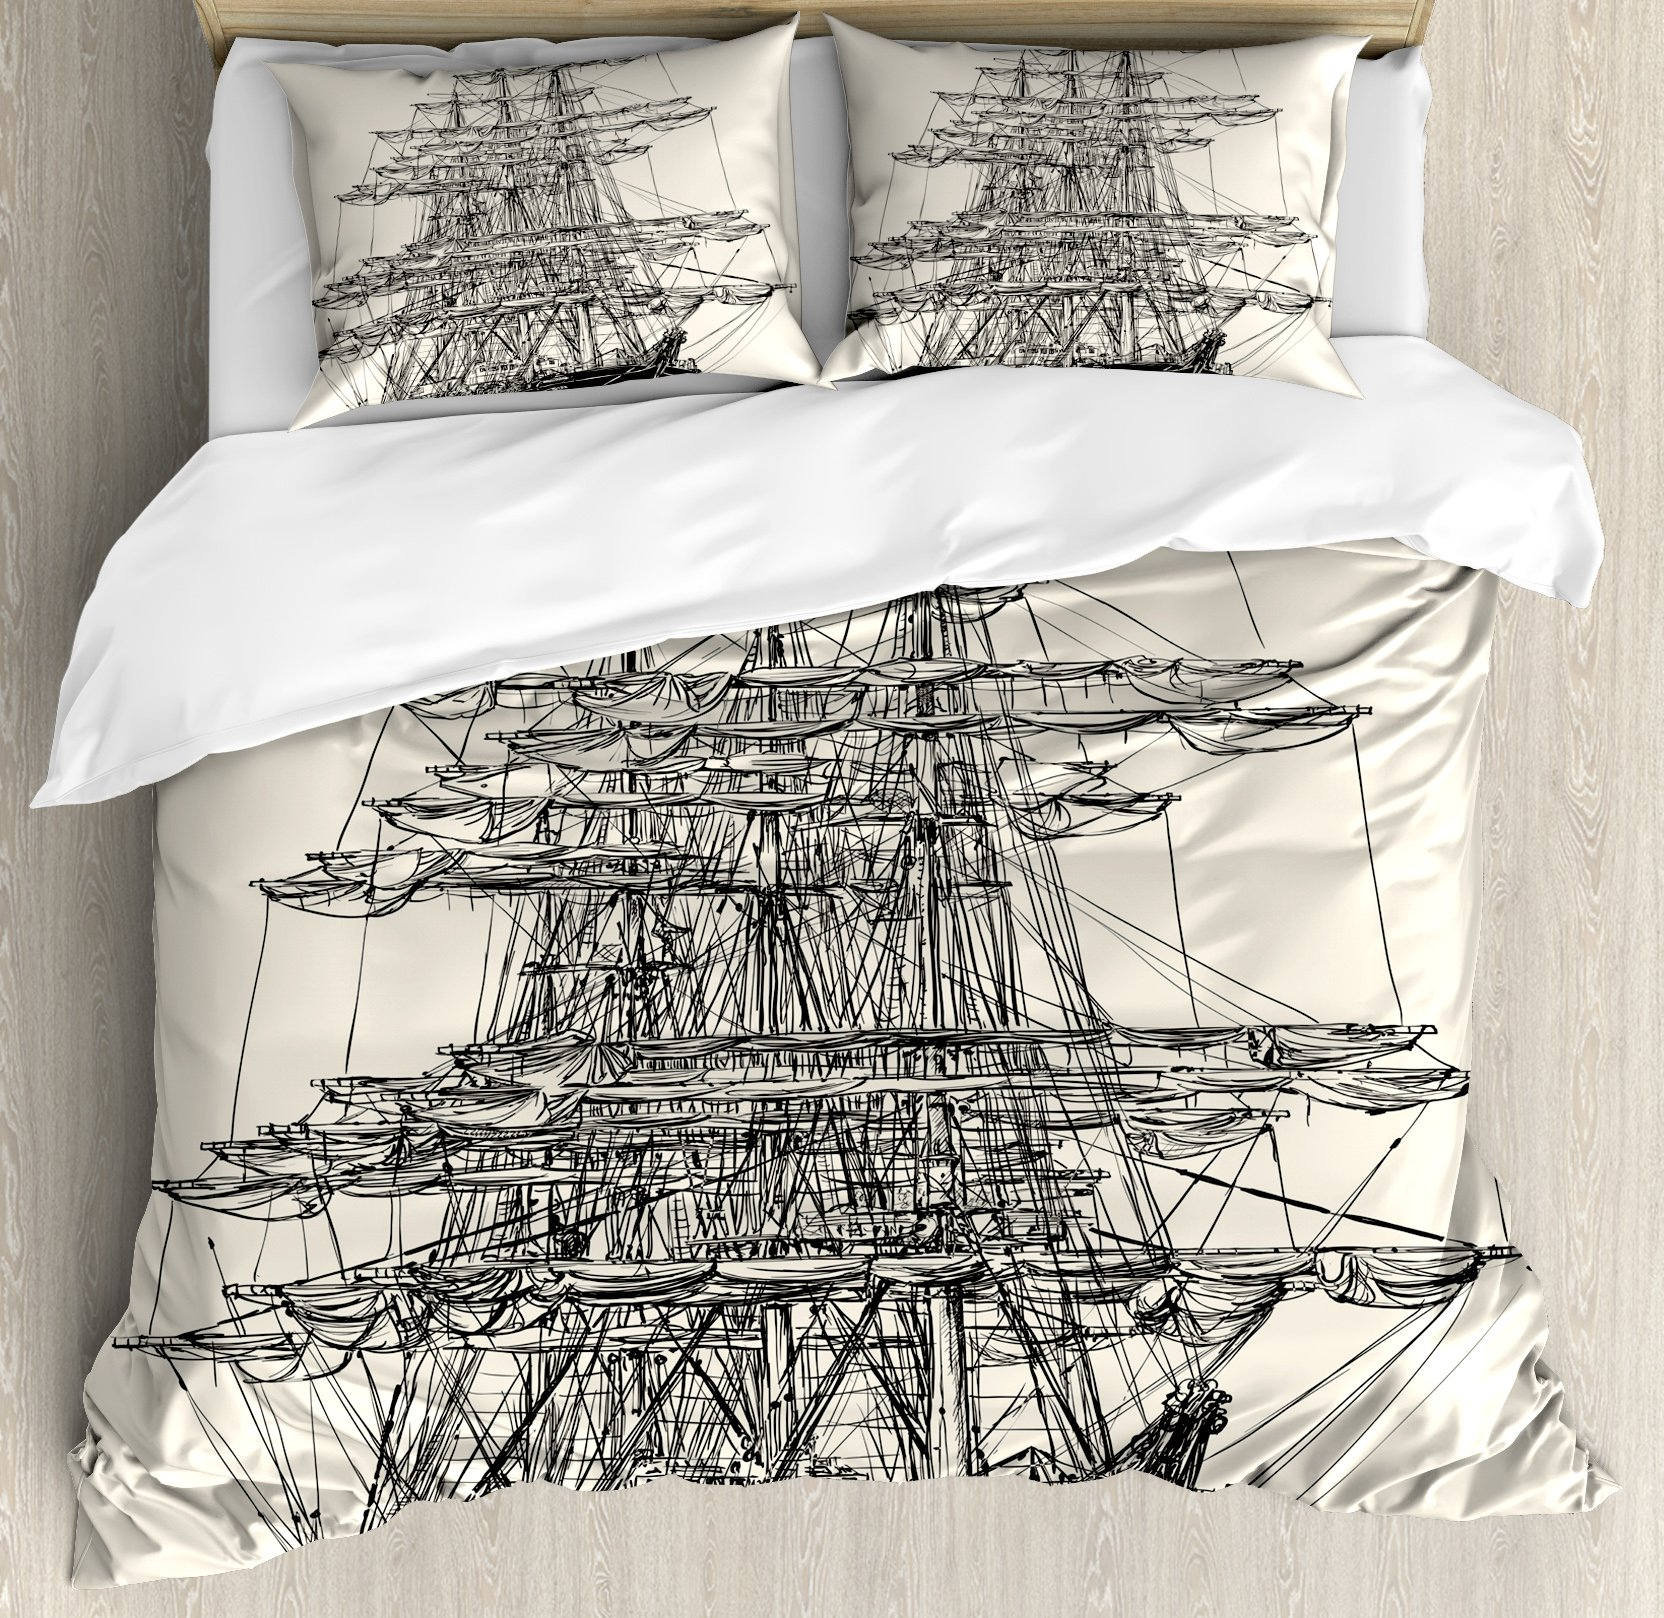 Pirate Ship Duvet Cover Set King Size by Ambesonne, Sailing Boat Detailed Illustration Nautical Maritime Theme Vintage Style Art, Decorative 3 Piece Bedding Set with 2 Pillow Shams, Cream Black